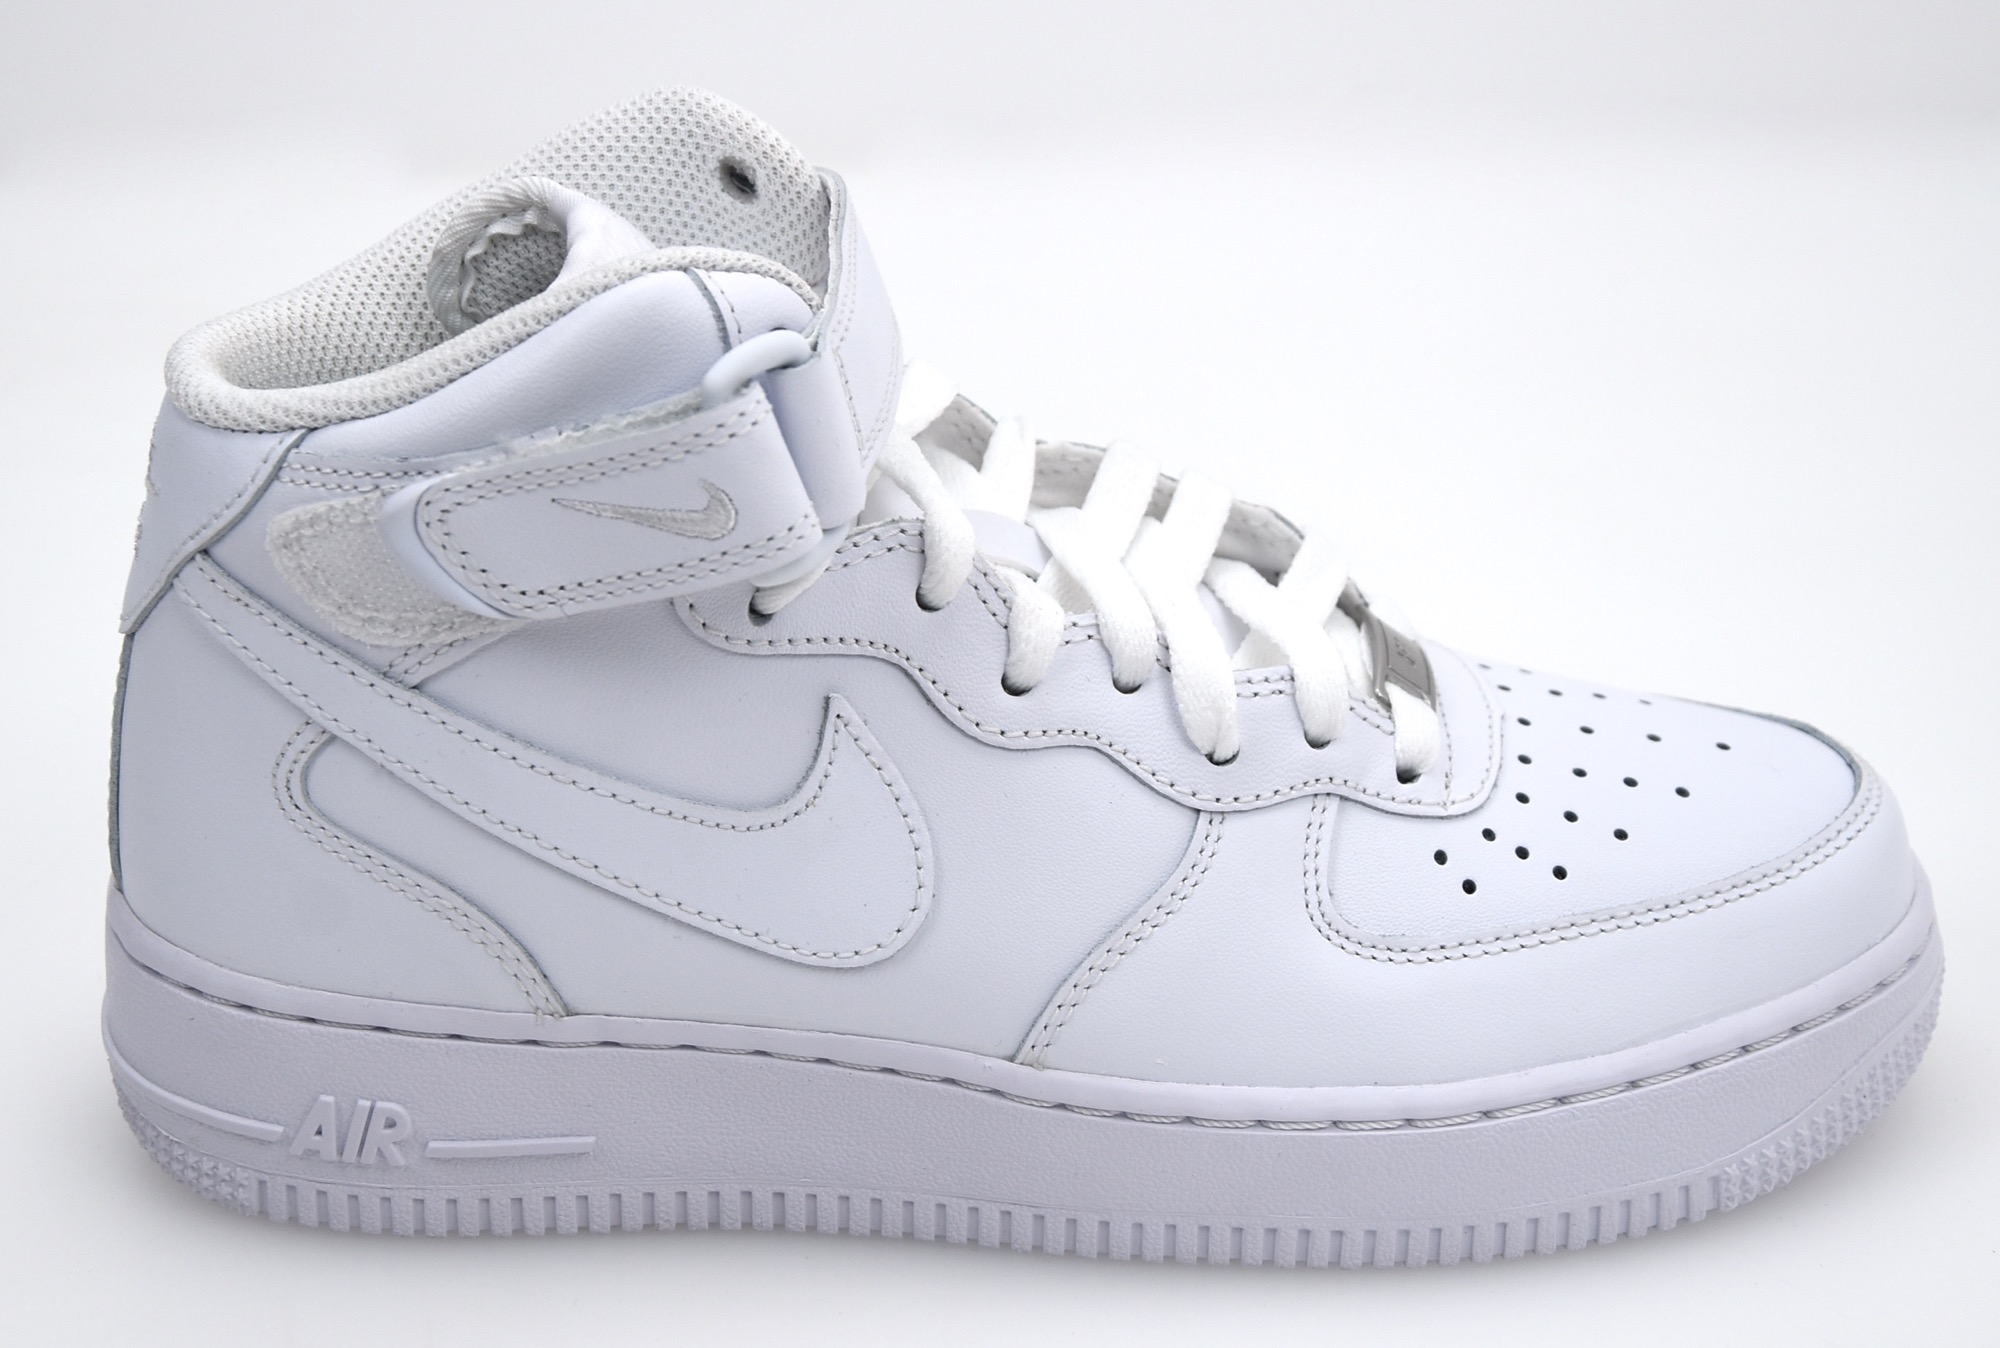 ff57a6a22a1a NIKE MAN SNEAKER SHOES CASUAL LEATHER CODE 315 123 111 AIR FORCE 1 MID  07